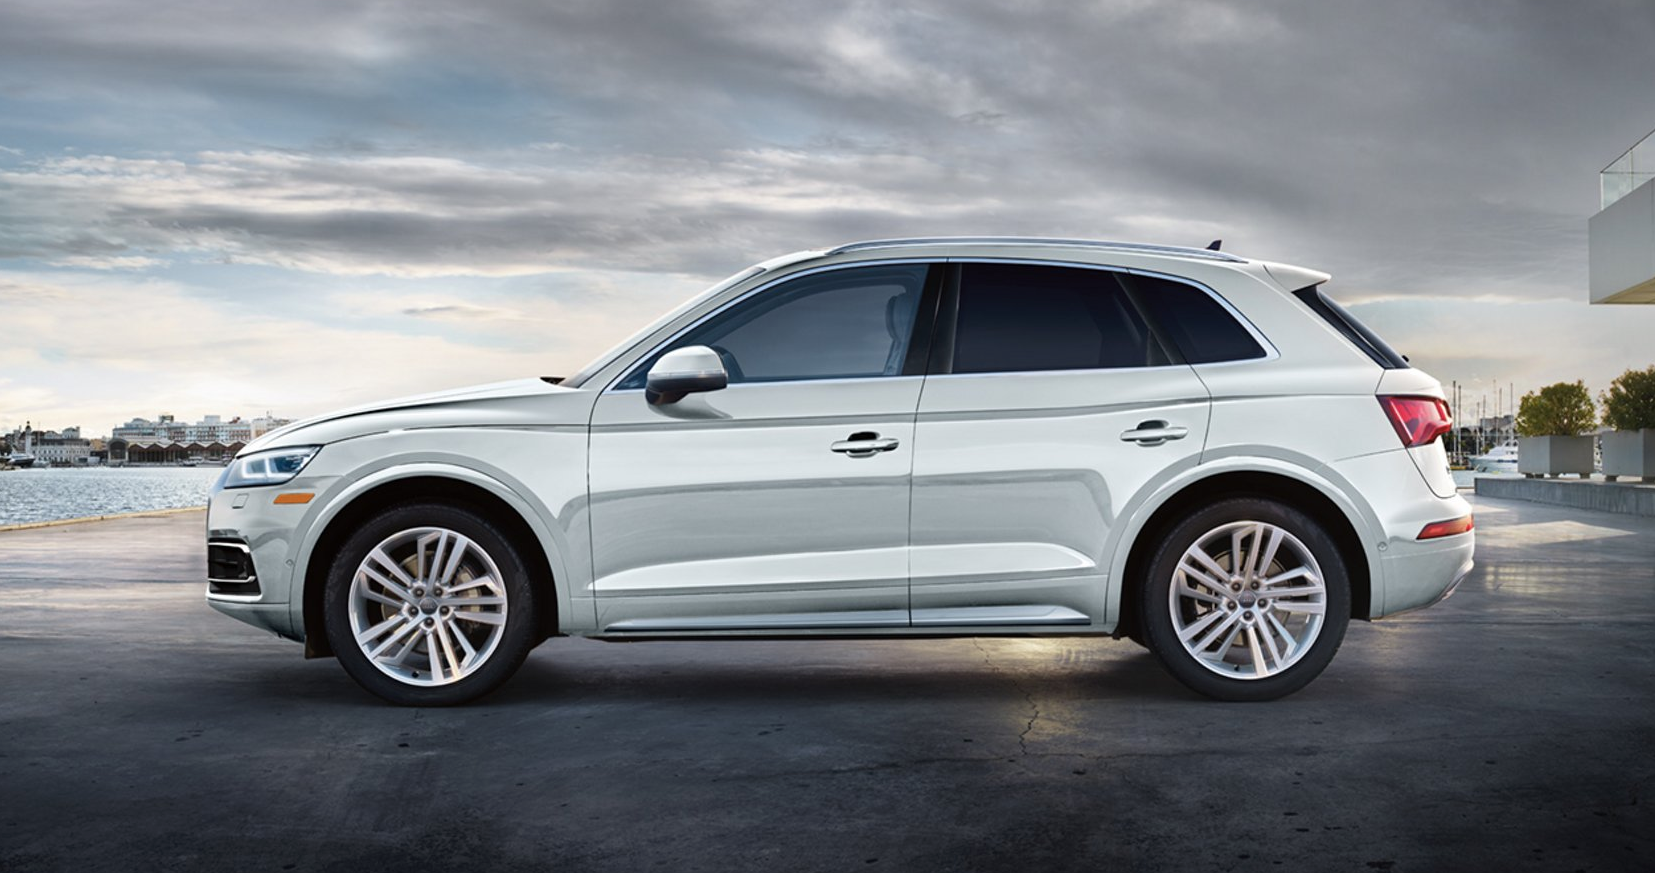 Audi Q5 The Best Luxury Compact SUV